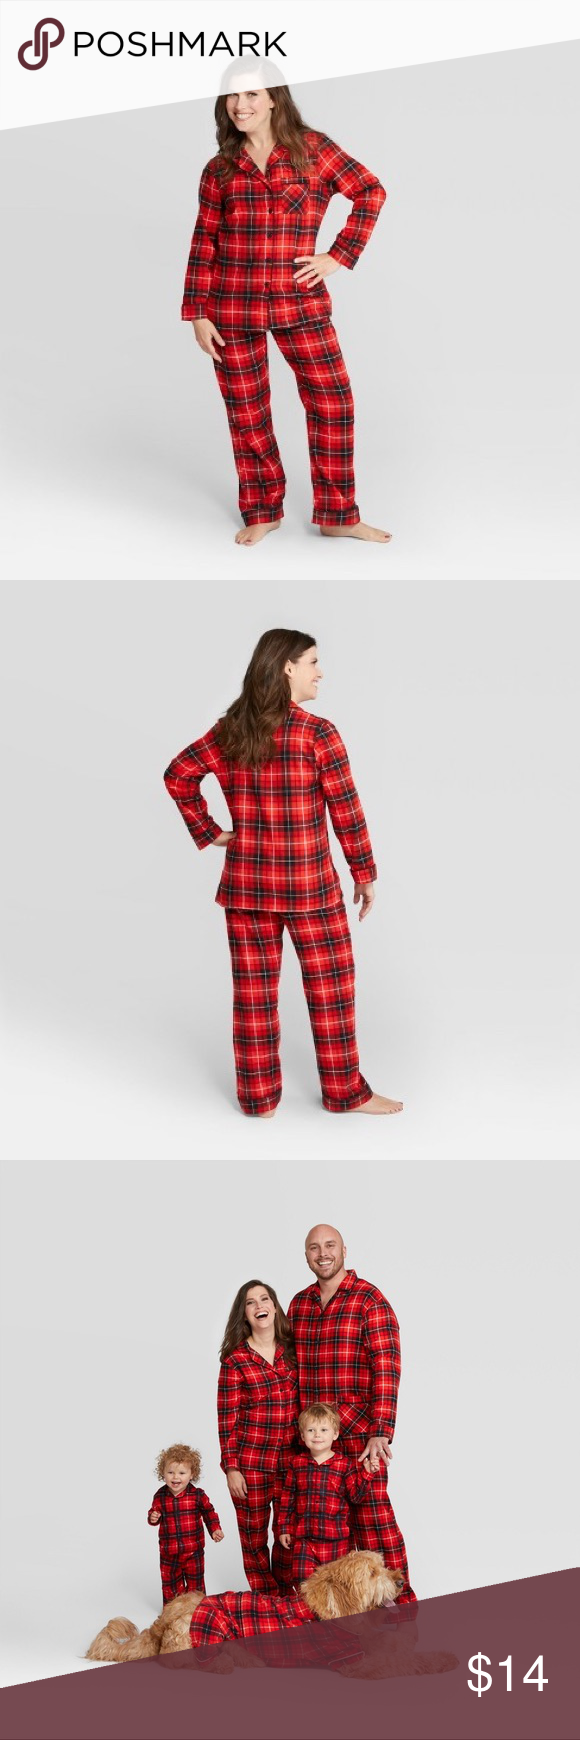 Target Christmas Pajamas Worn and washed a few